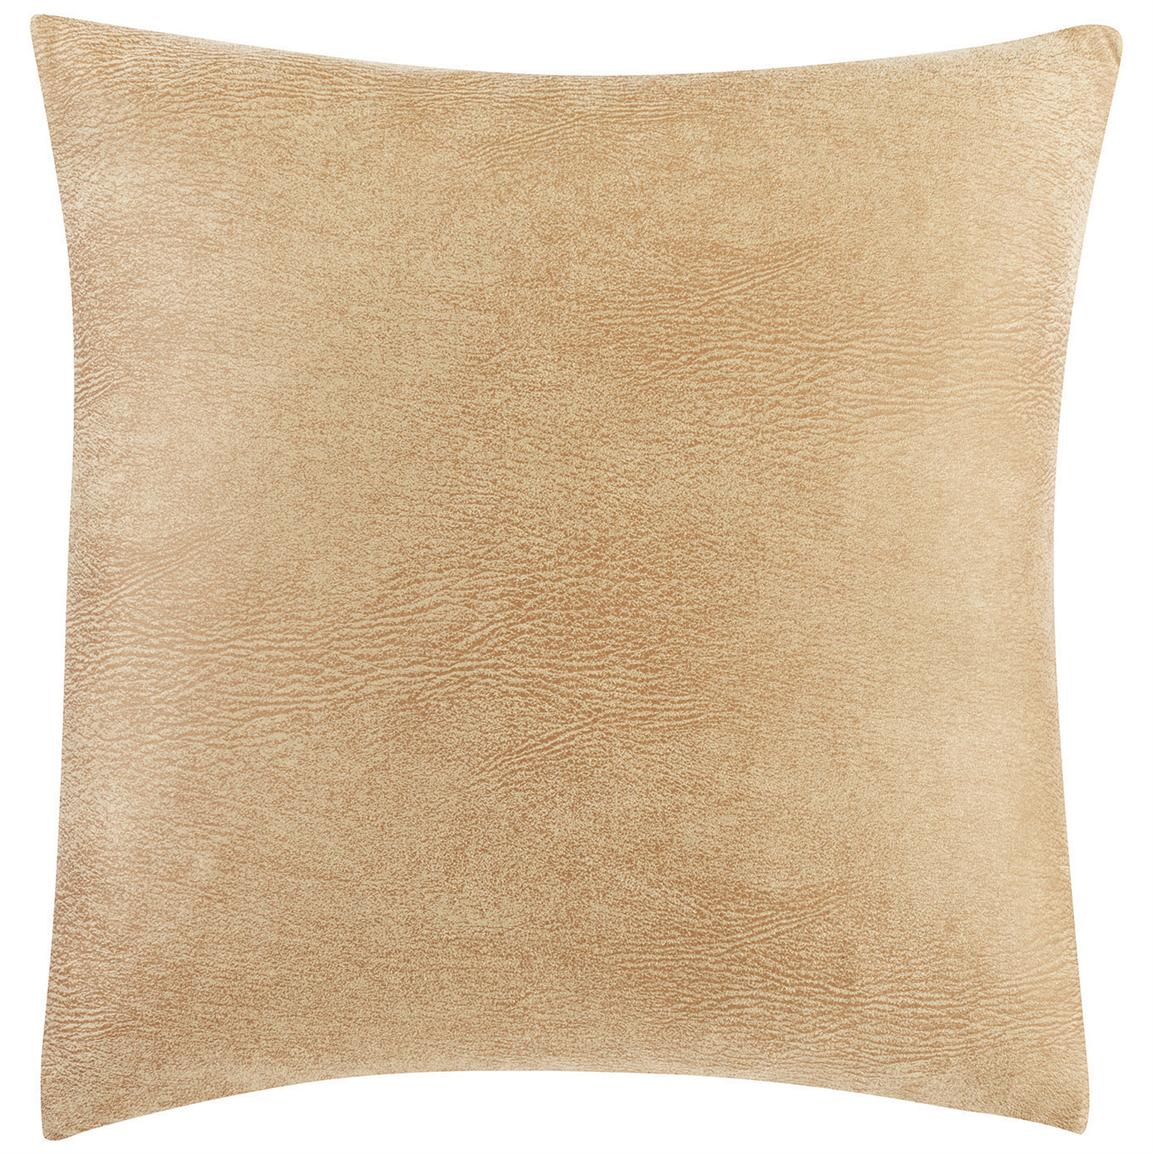 "Sure Fit® Stretch Leather 18"" Throw Pillow, Camel"